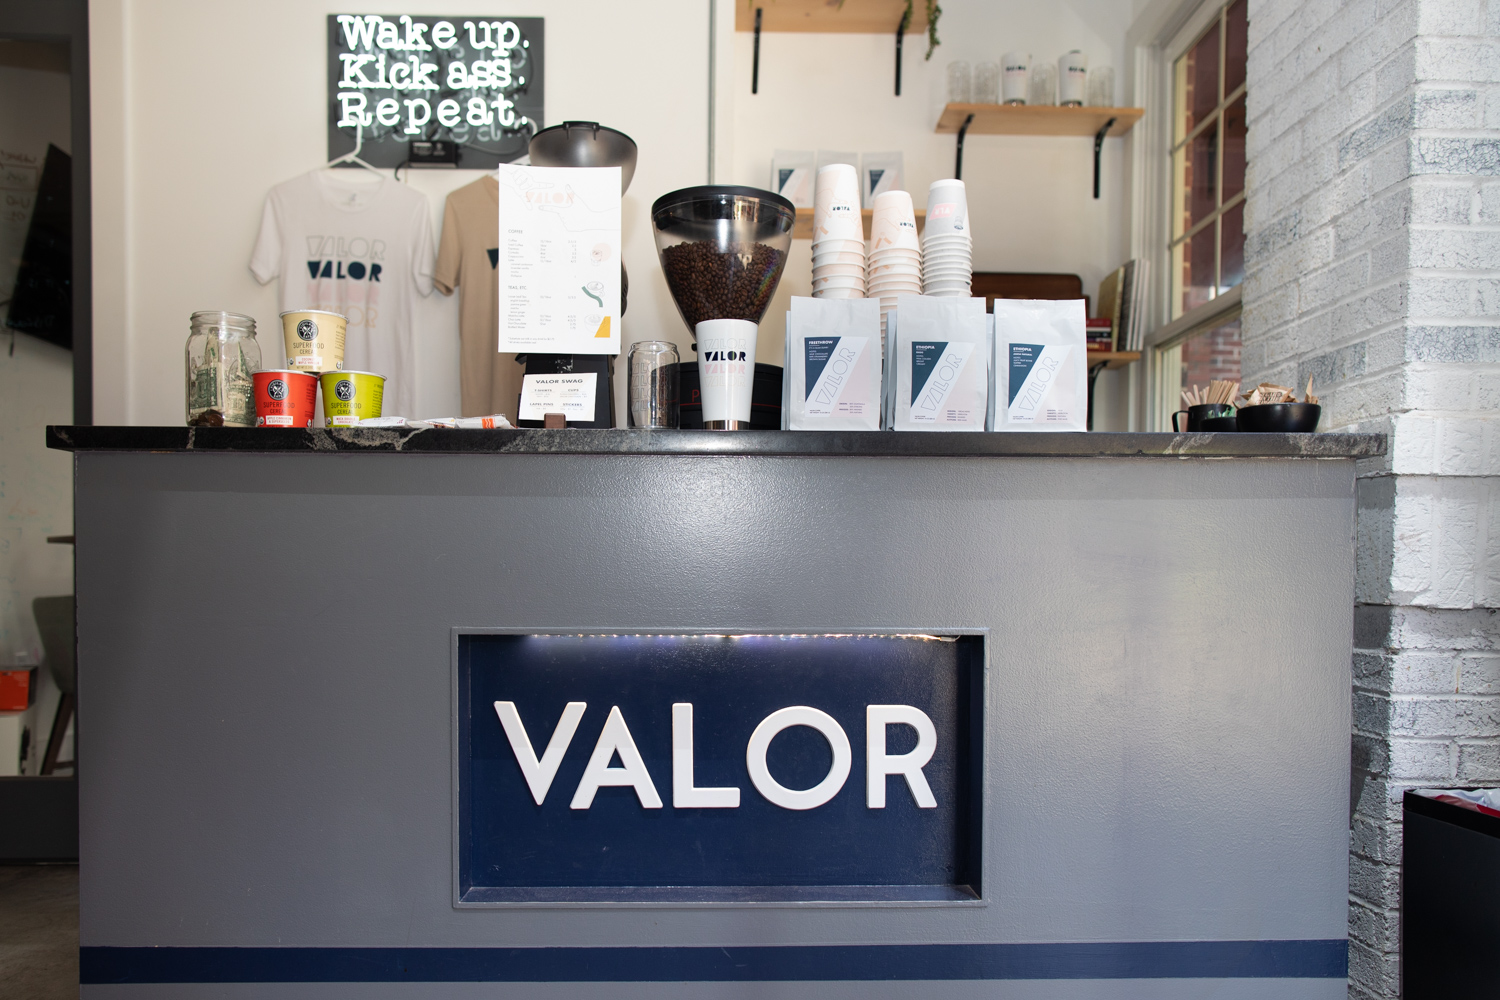 The VALOR logo—nicely illuminated.